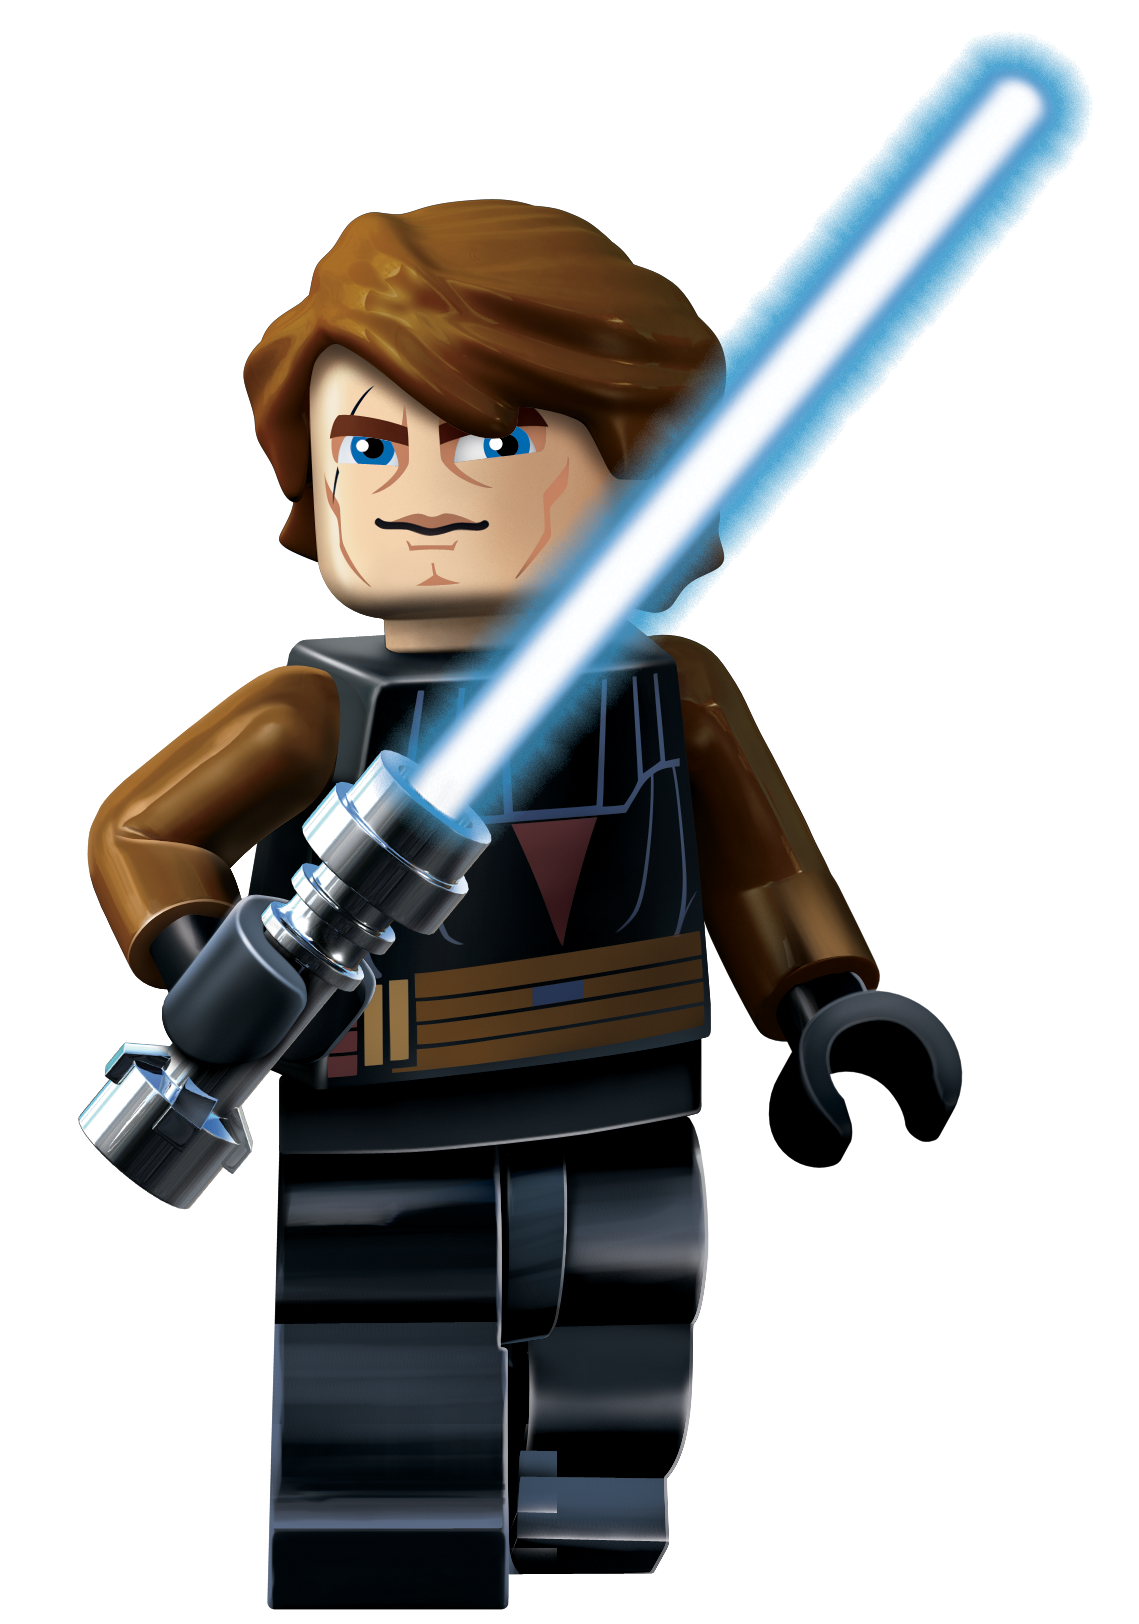 Anakin skywalker lego star wars wiki fandom powered by wikia - Vaisseau star wars anakin ...